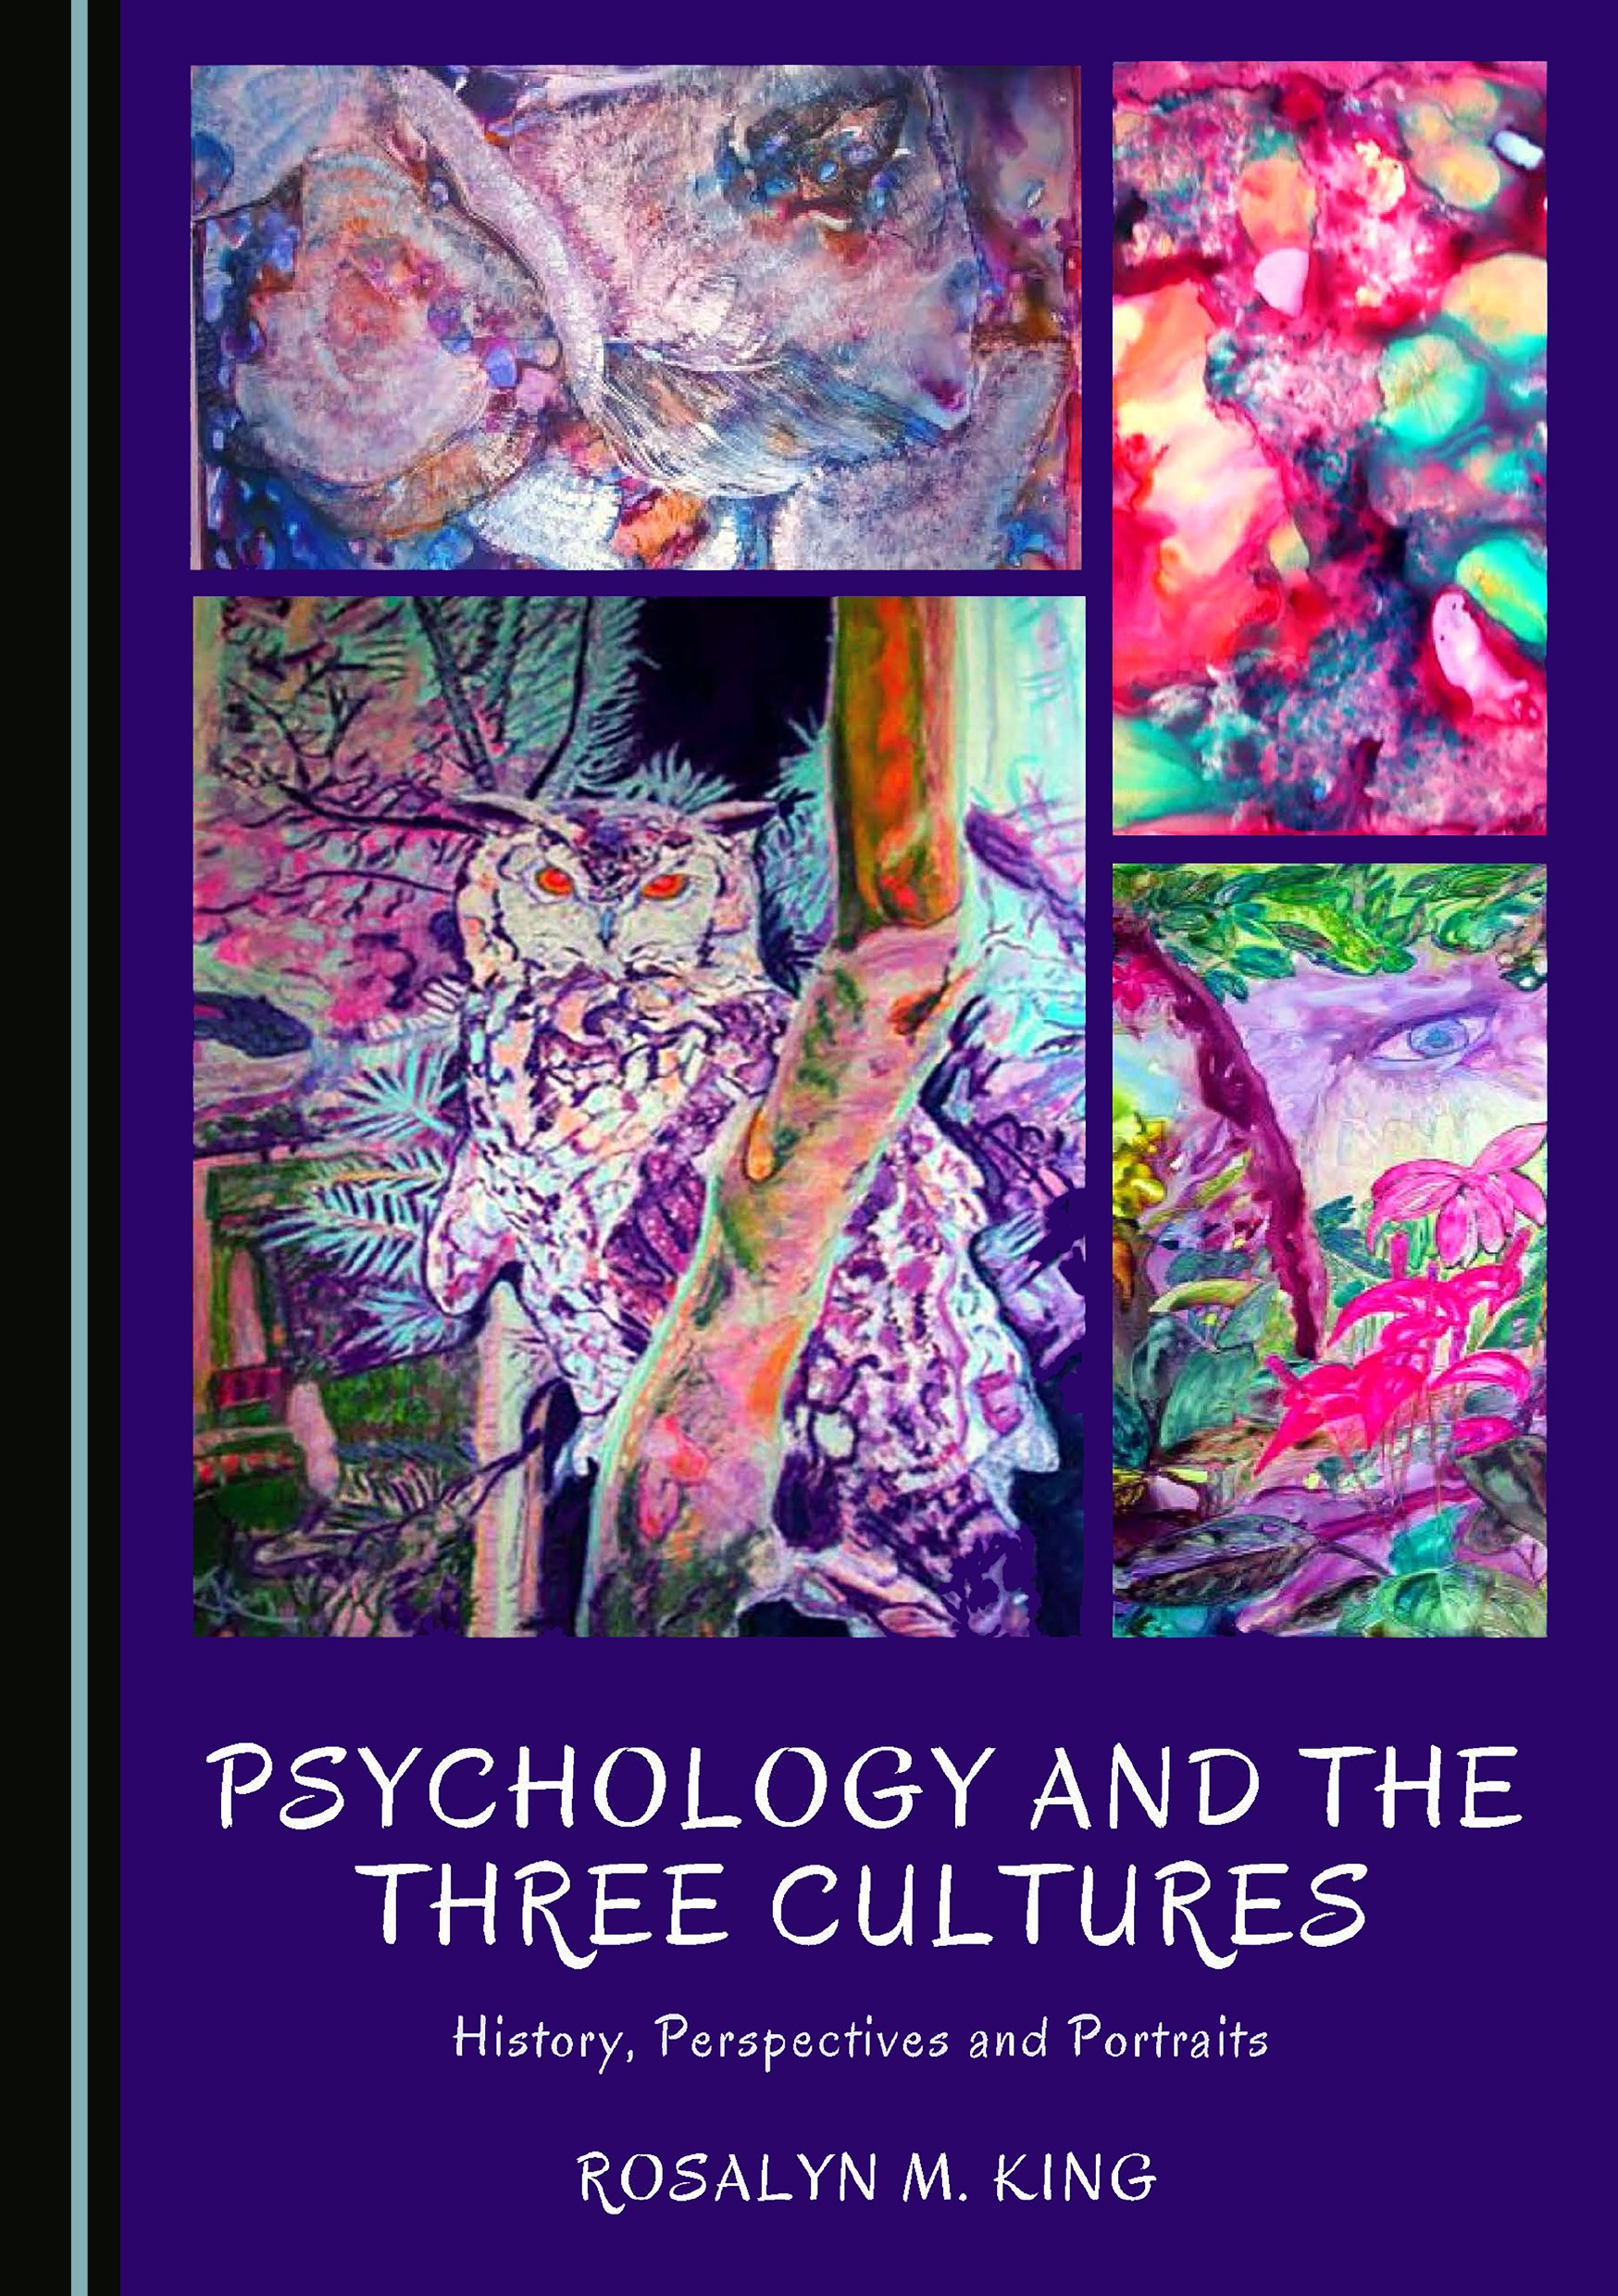 Psychology and the Three Cultures: History, Perspectives and Portraits